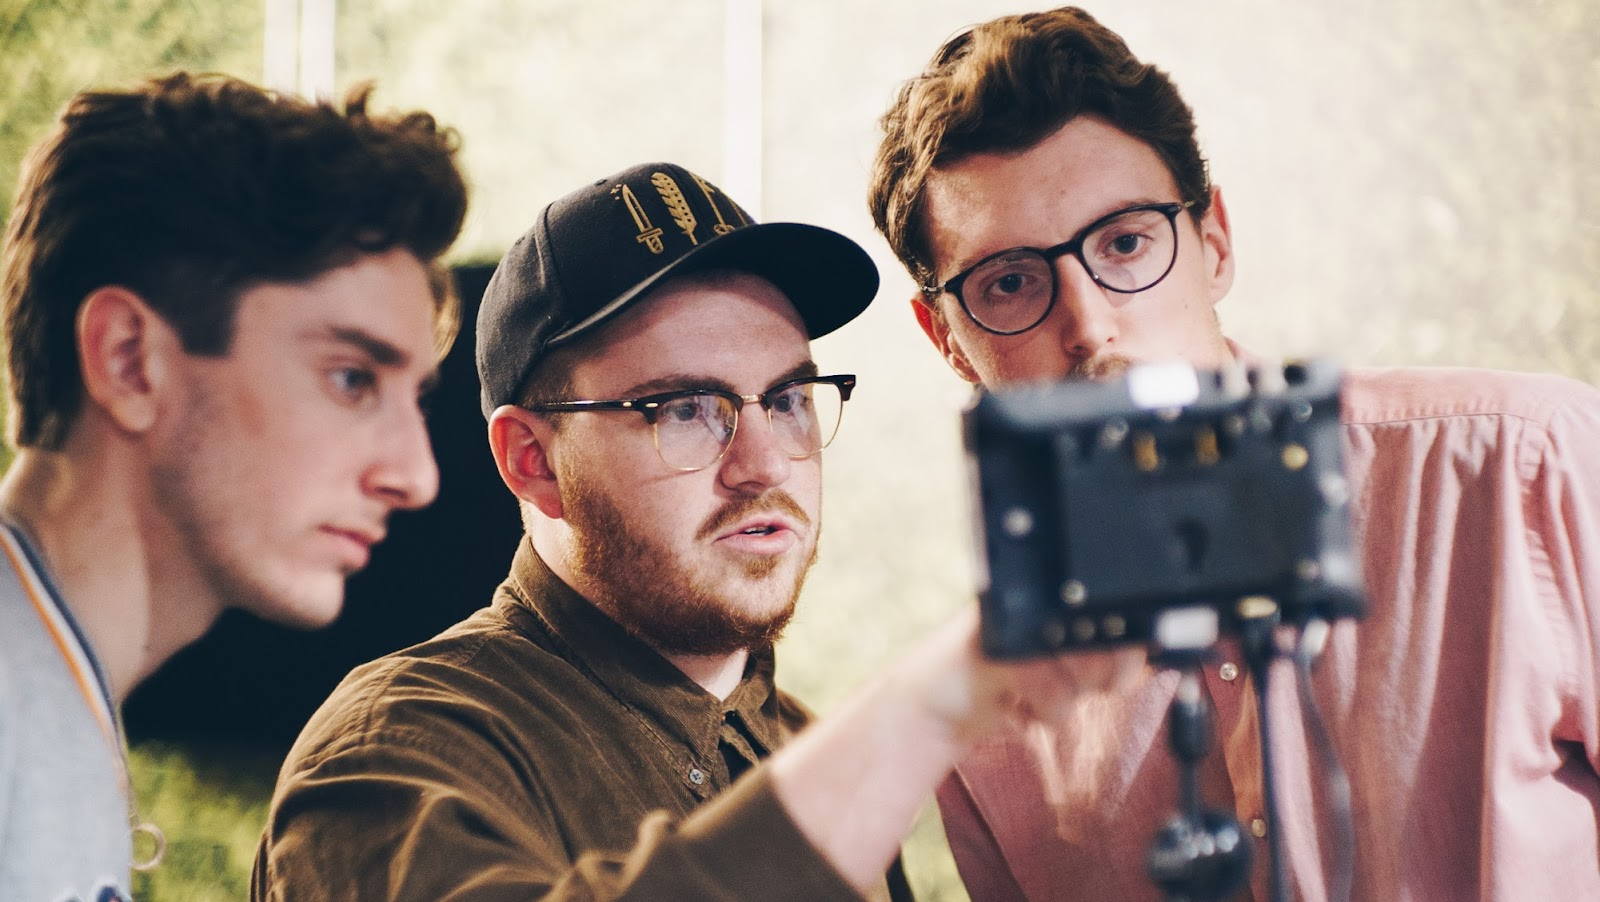 Max behind the camera with friends